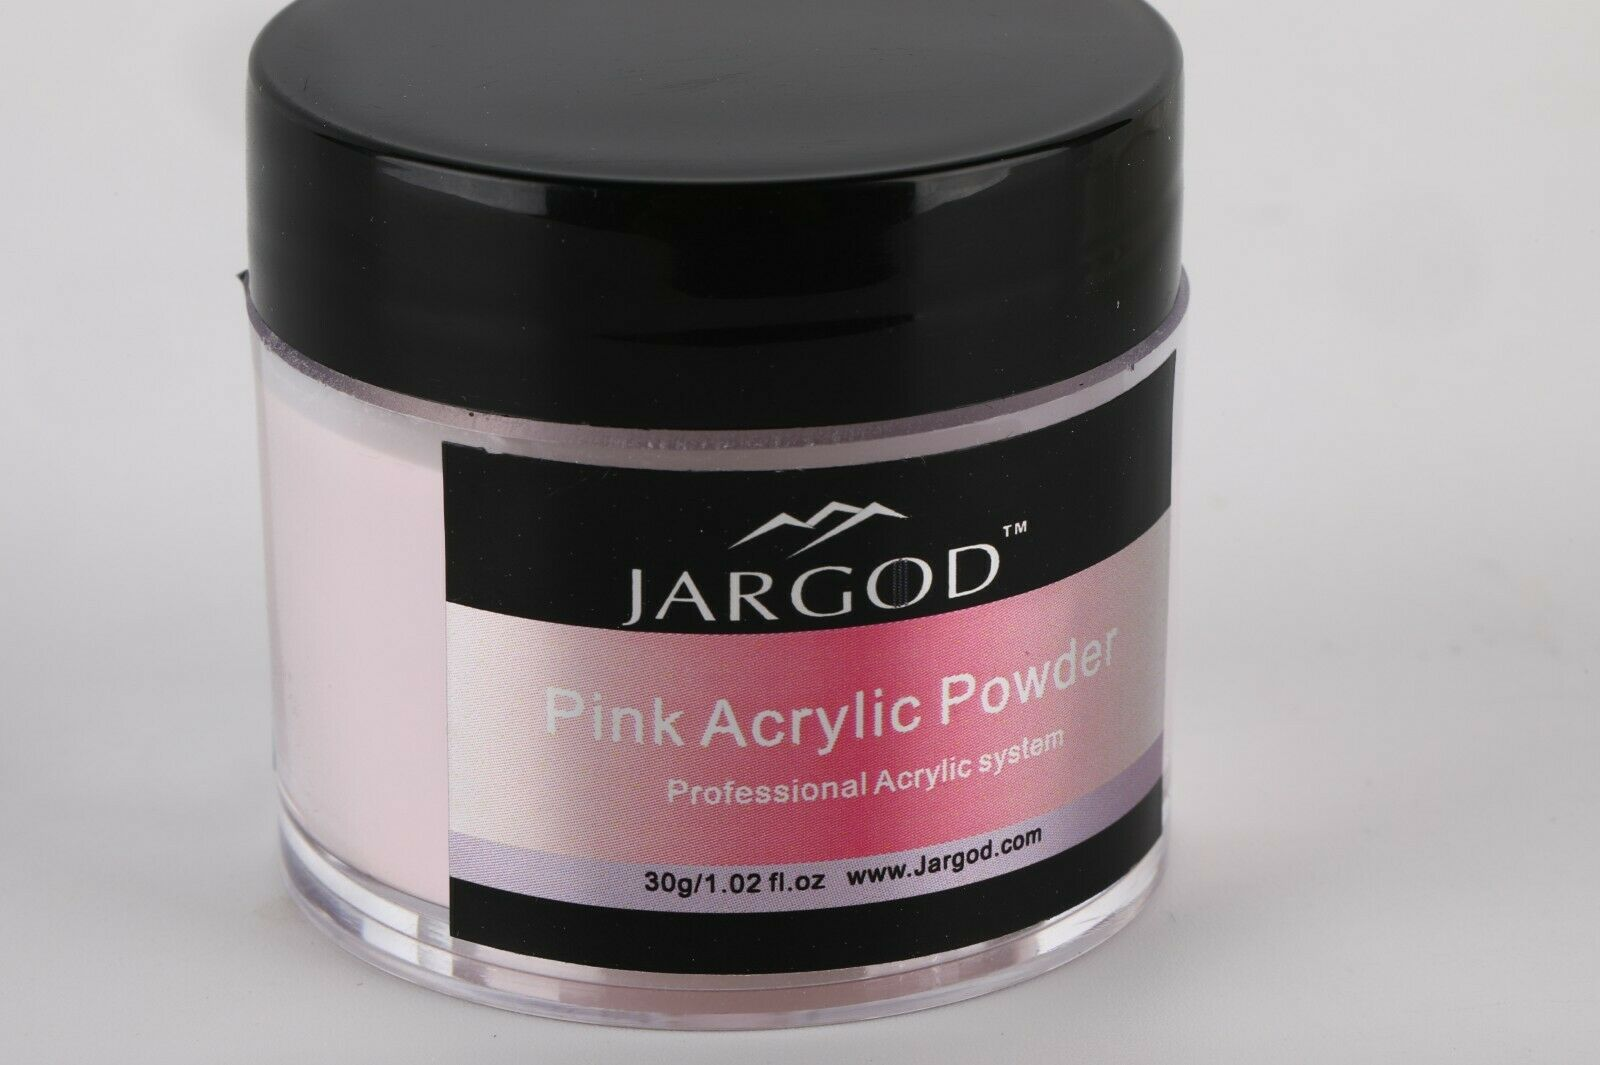 Jargod ACRYLIC POWDER Pink White Clear Acrylic Powder Choose